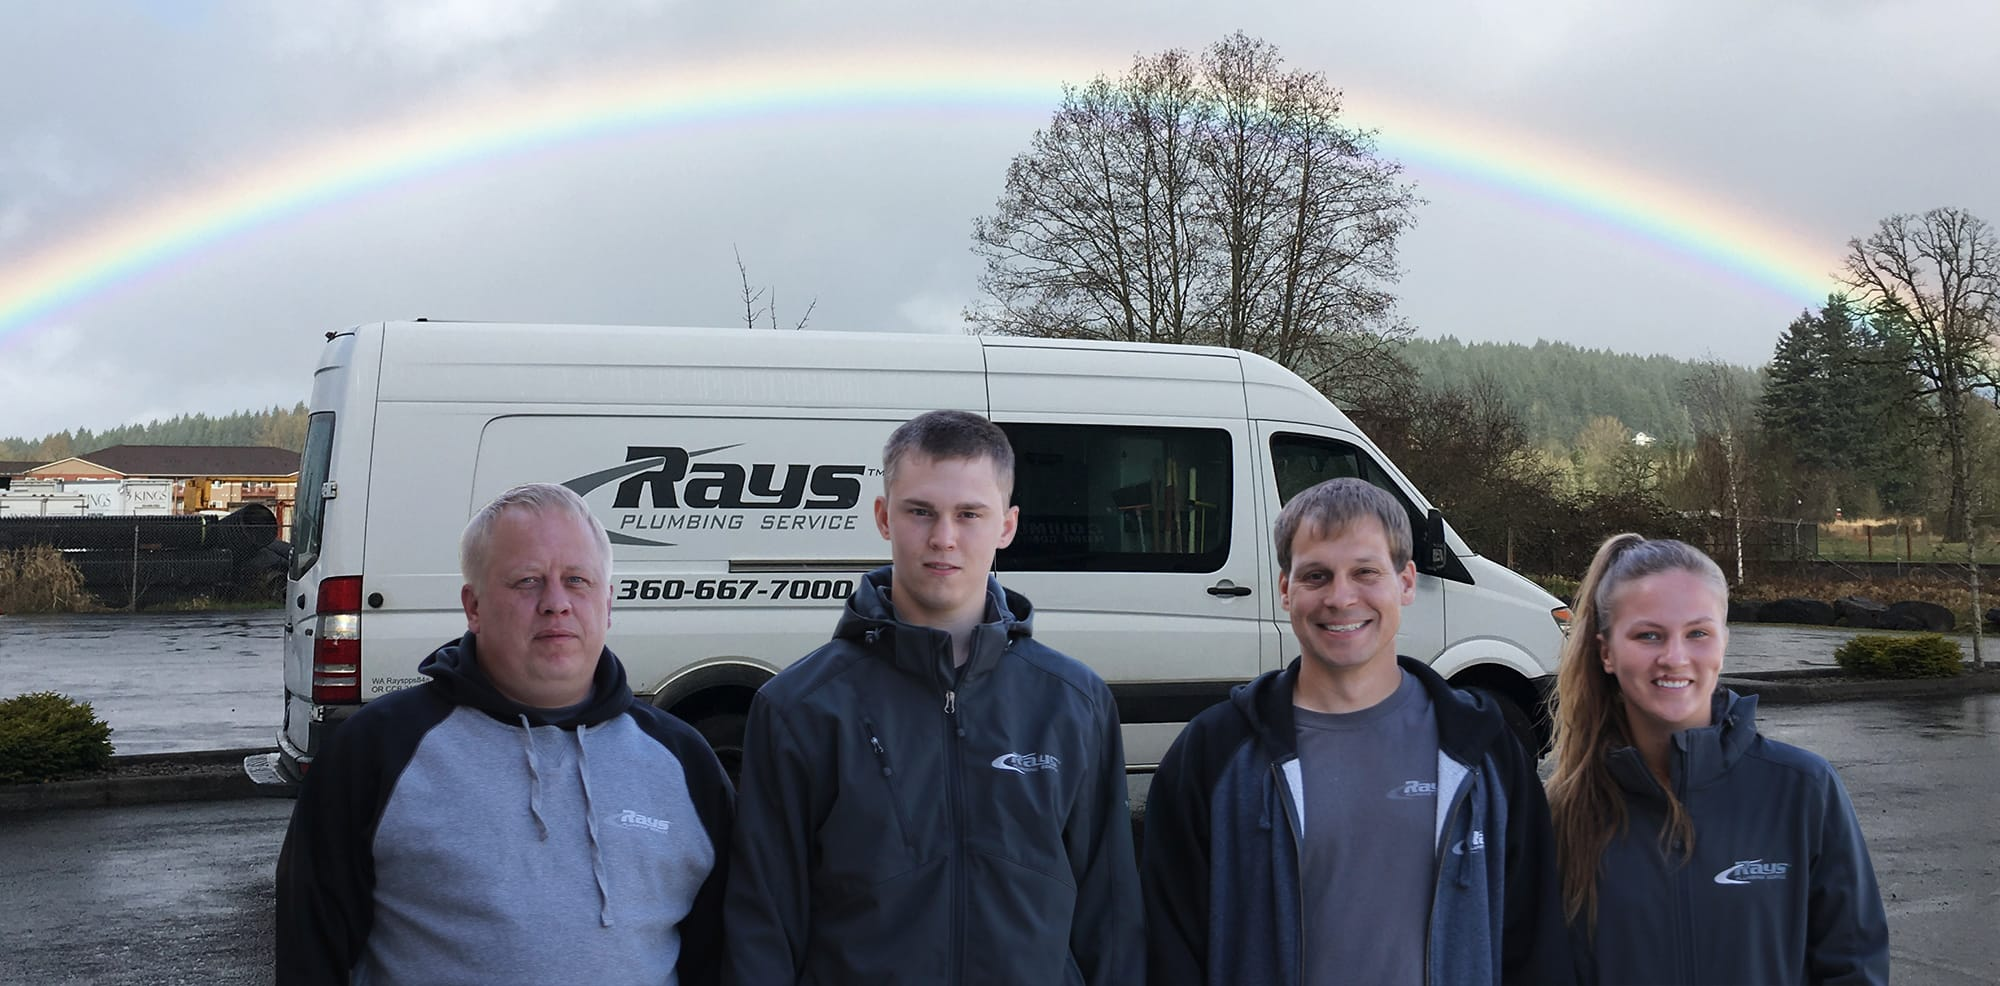 Rays plumbing in vancouver washington